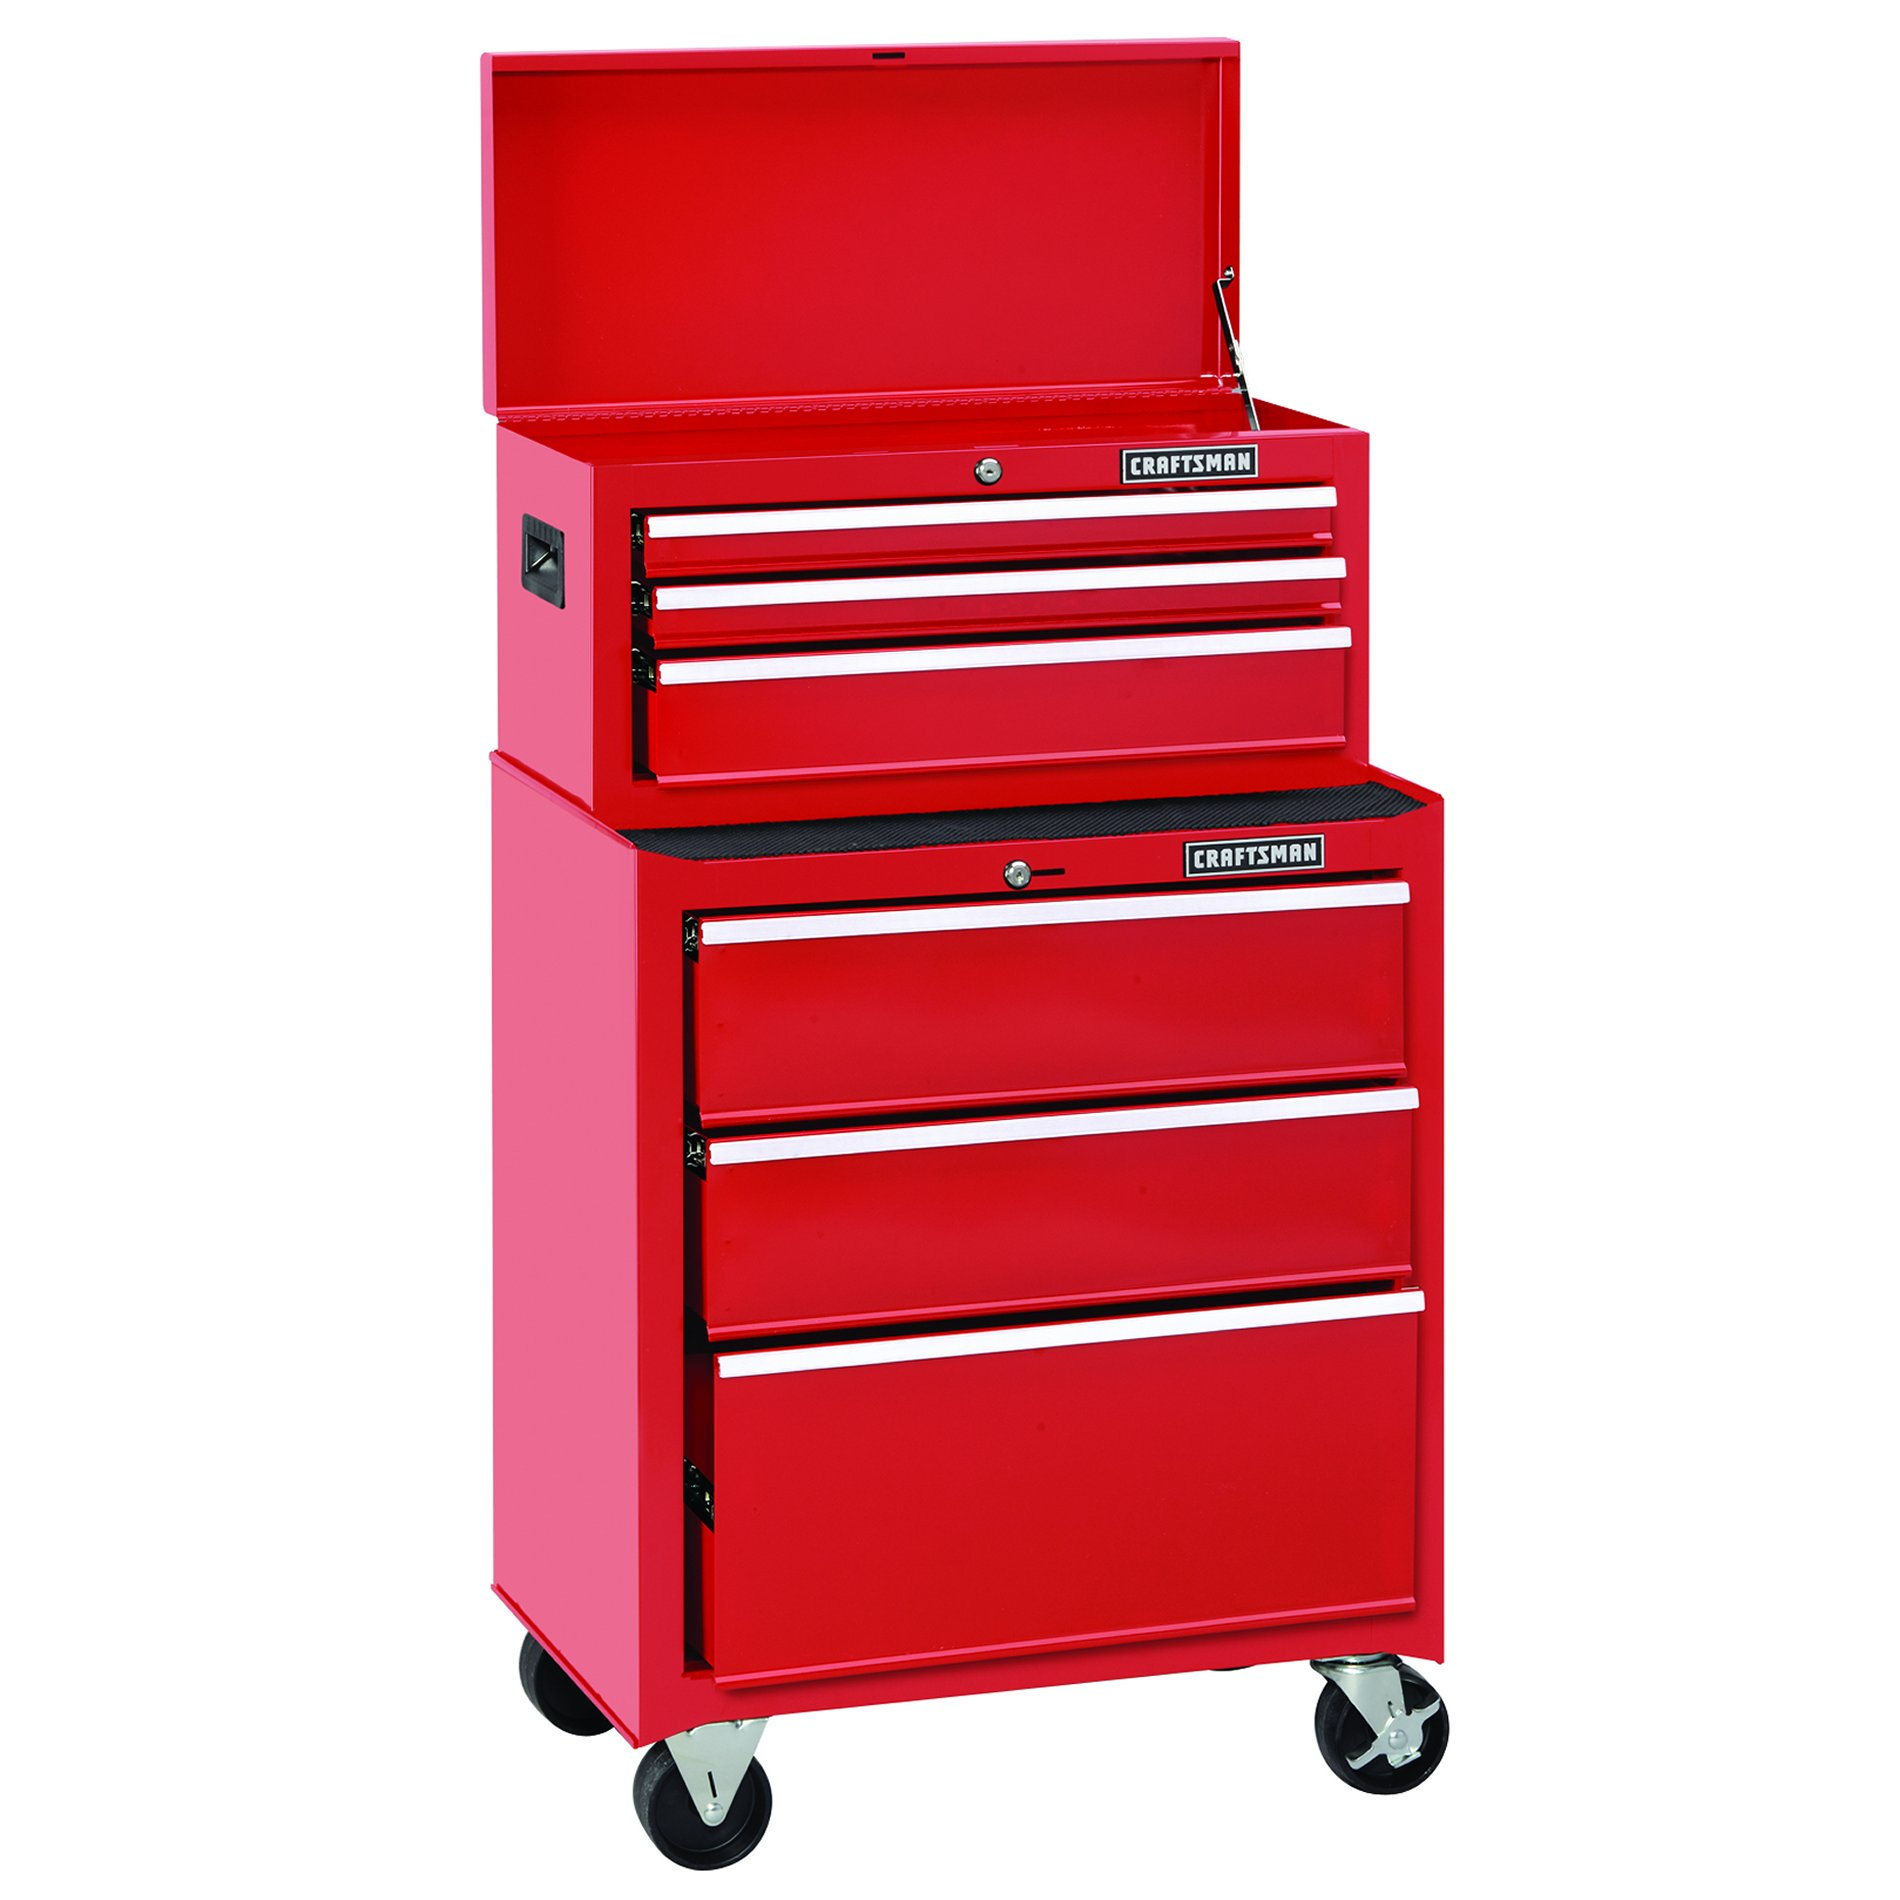 Craftsman 26 in. Wide 3-Drawer Standard Duty Ball-Bearing Top Chest - Red